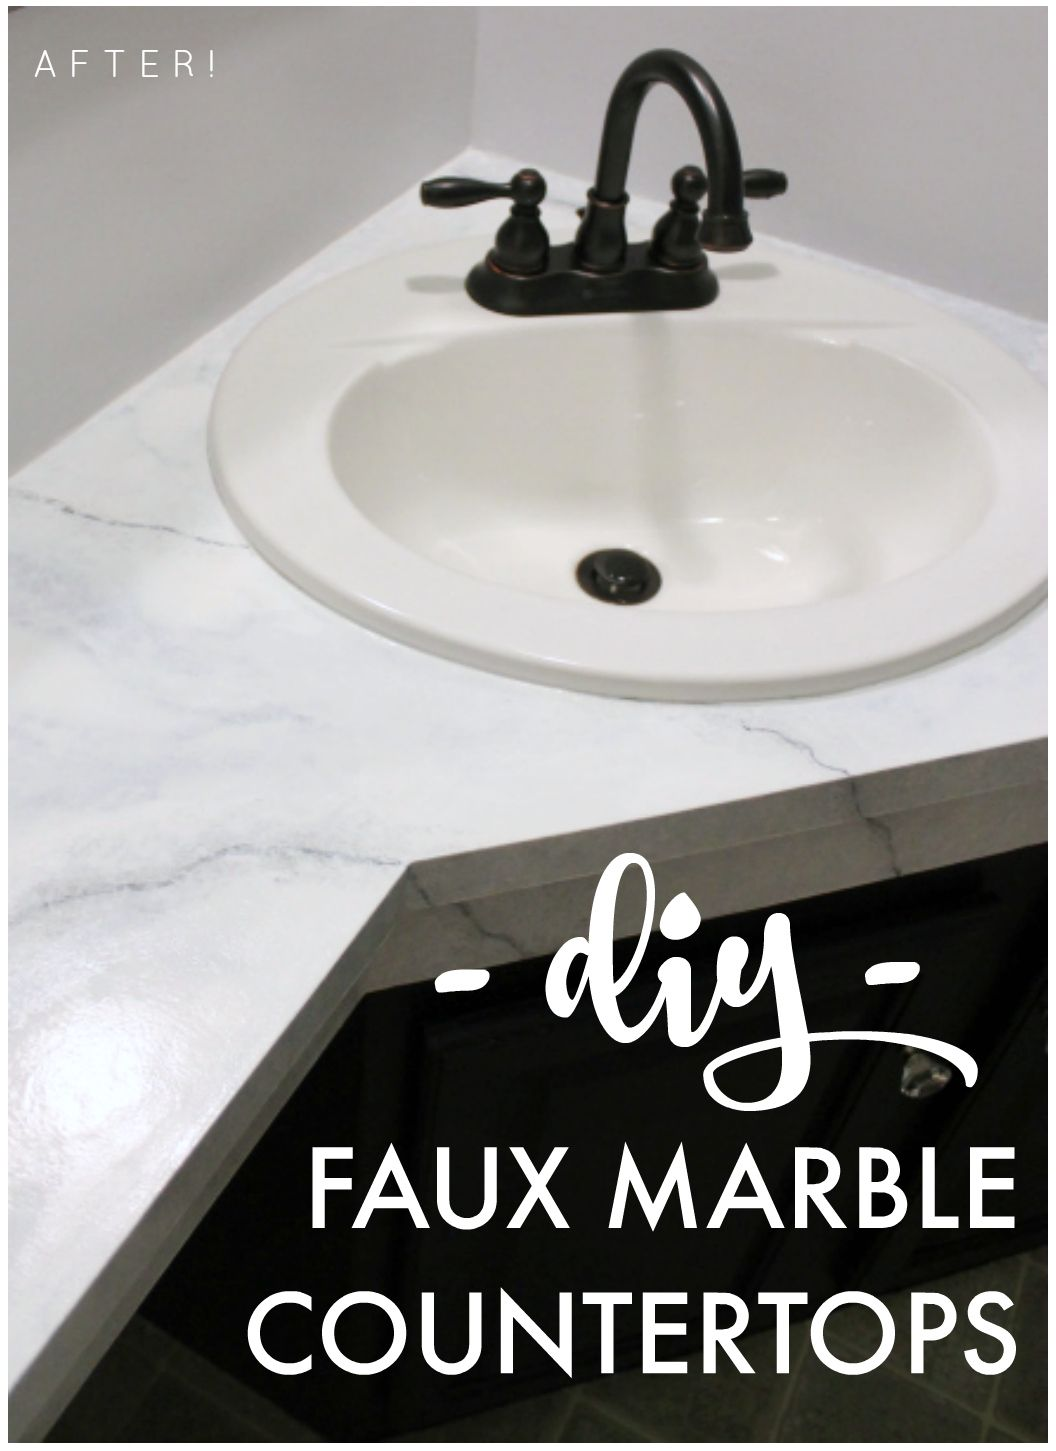 Diy Marble Countertops From Outdated Laminate To Beautiful Marble For Less Than 100 Ohthefun921 S Countertops Diy Bathroom Makeover Countertop Paint Kit